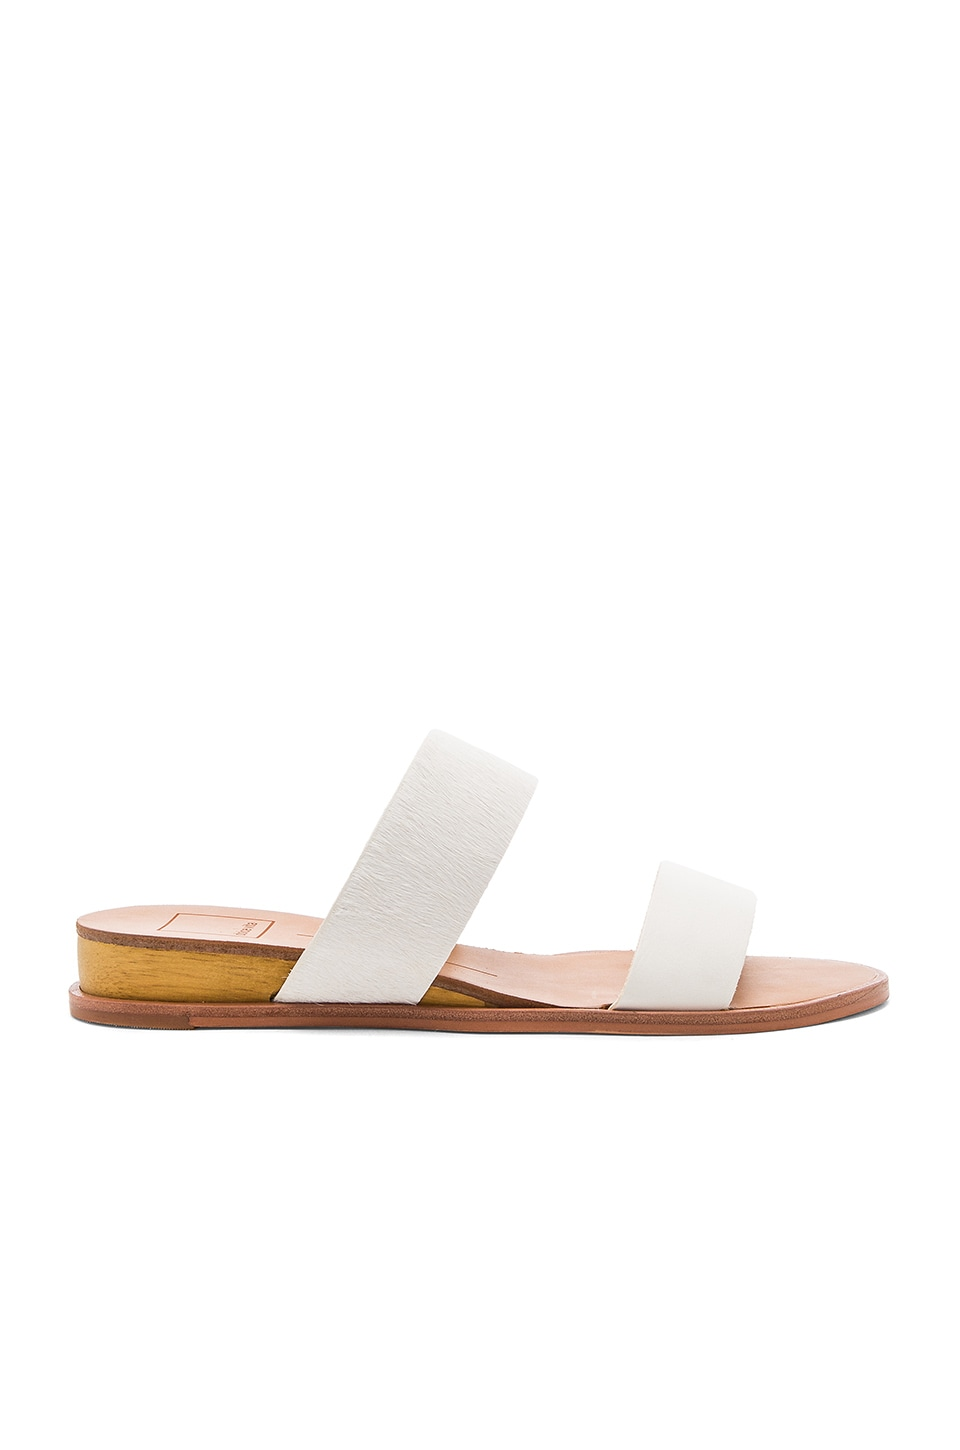 Dolce Vita Payce Cow Hair Sandal in White